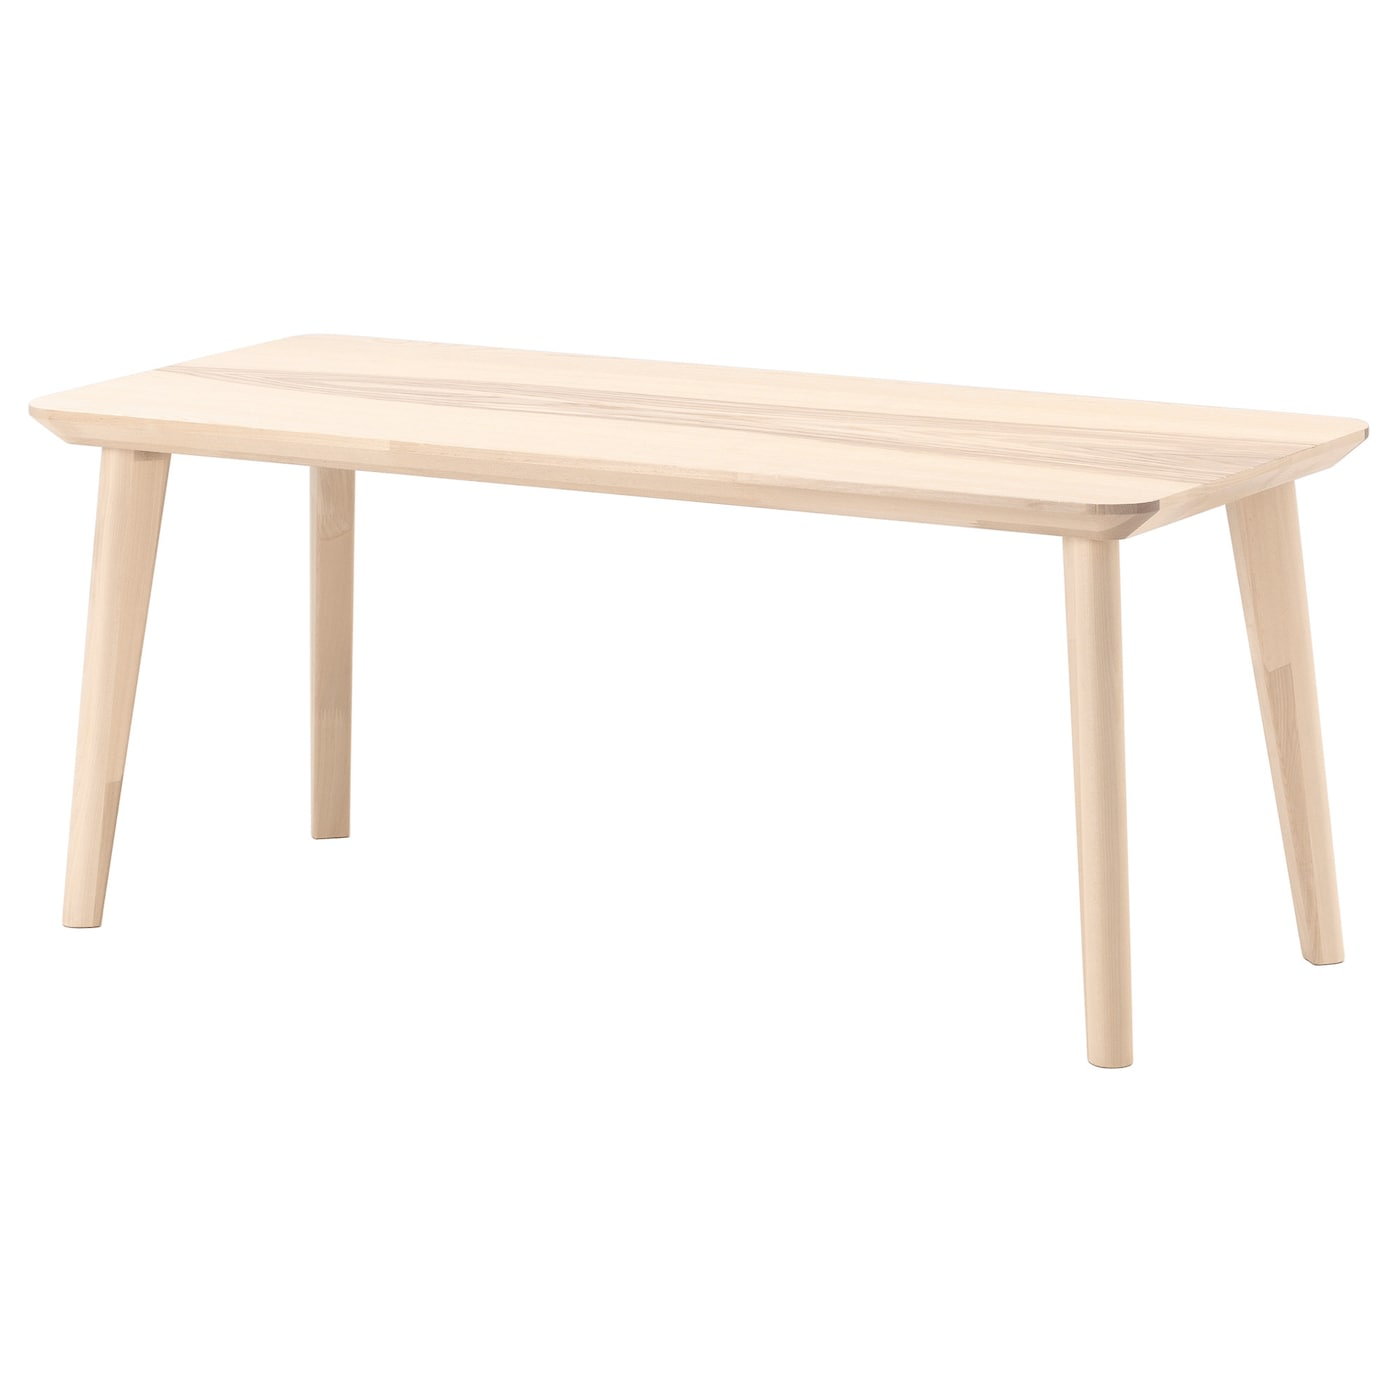 Lisabo coffee table ash veneer 118x50 cm ikea - Table basse ikea avec tiroir ...